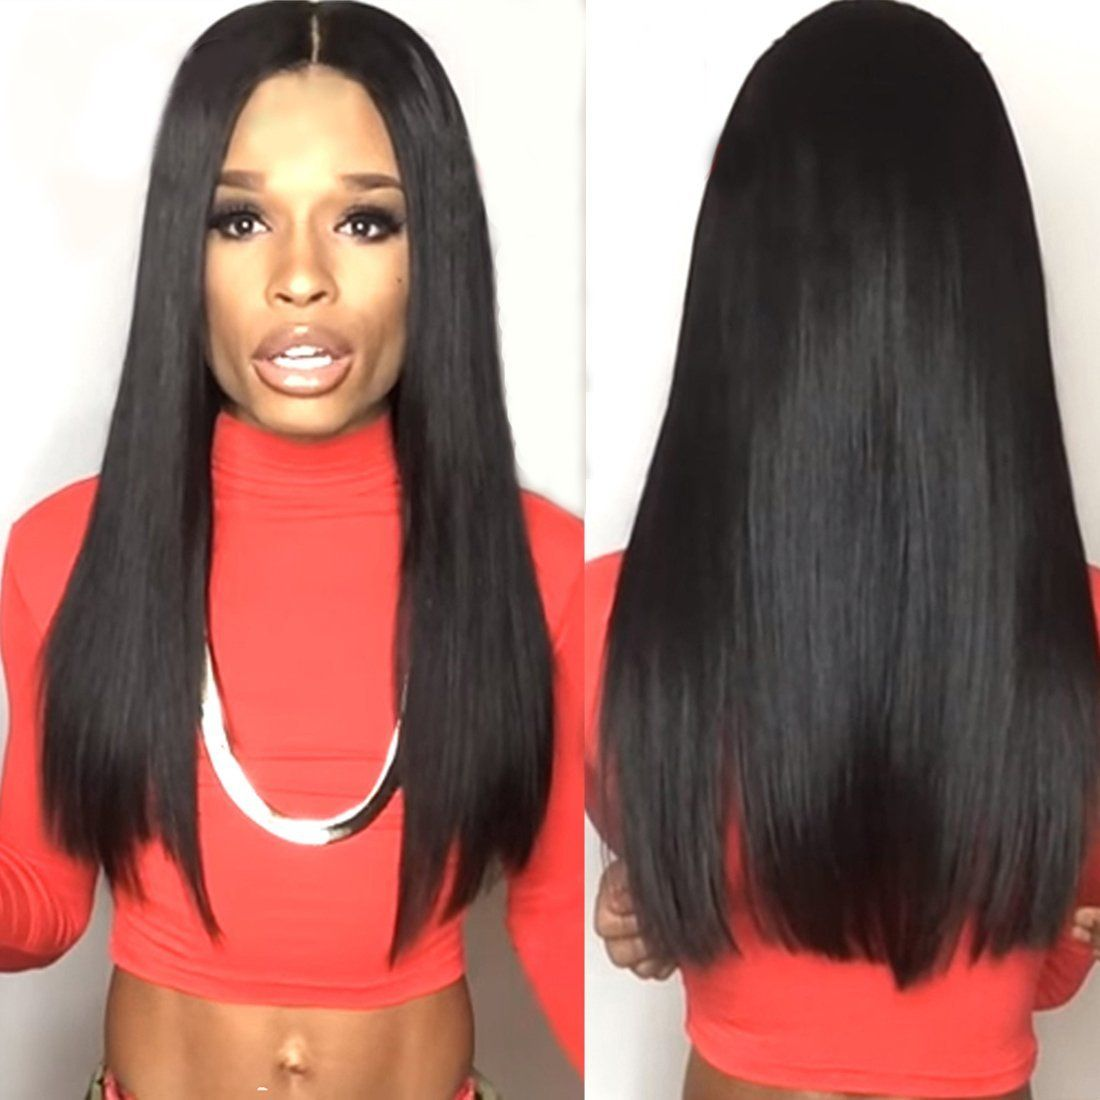 Human Hair Lace Wigs Hair Extensions & Wigs Brazilian Straight Pre Plucked Full Lace Human Hair Wigs Glueless Full Lace Wigs With Baby Hair Natural Hair Remy Wig Fabeauty